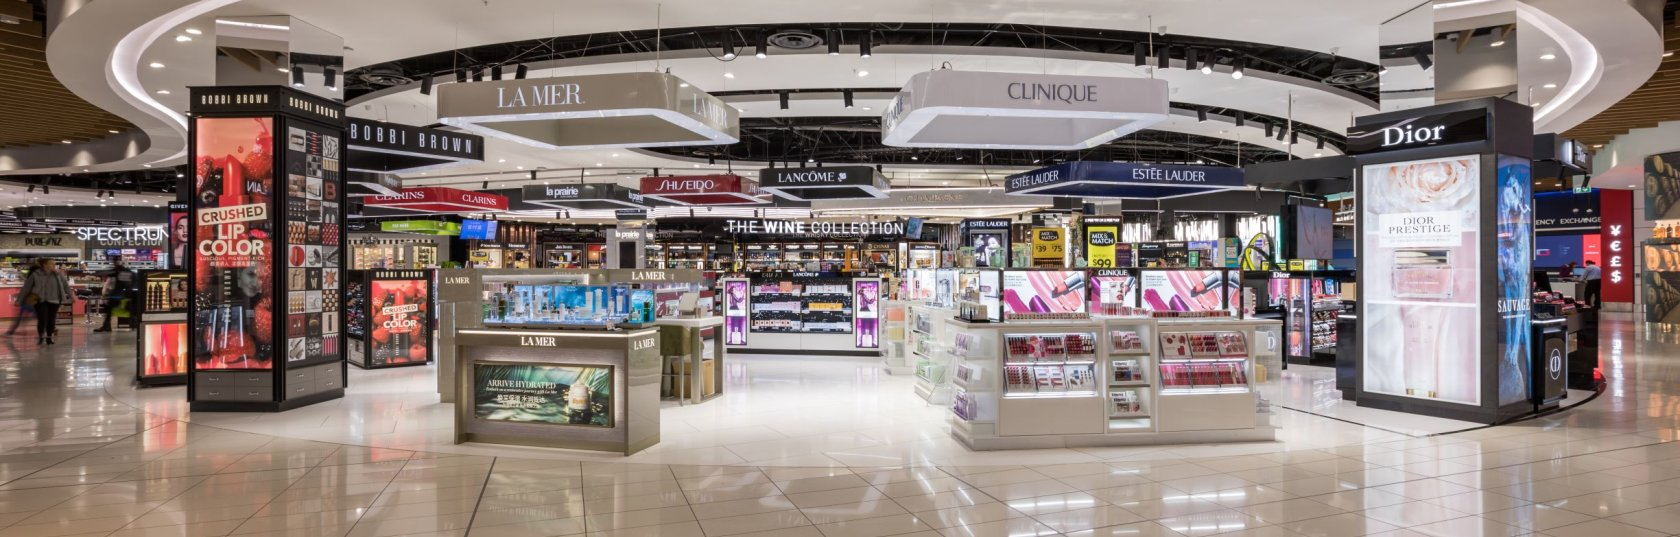 Enhancing the architecture of retail spaces